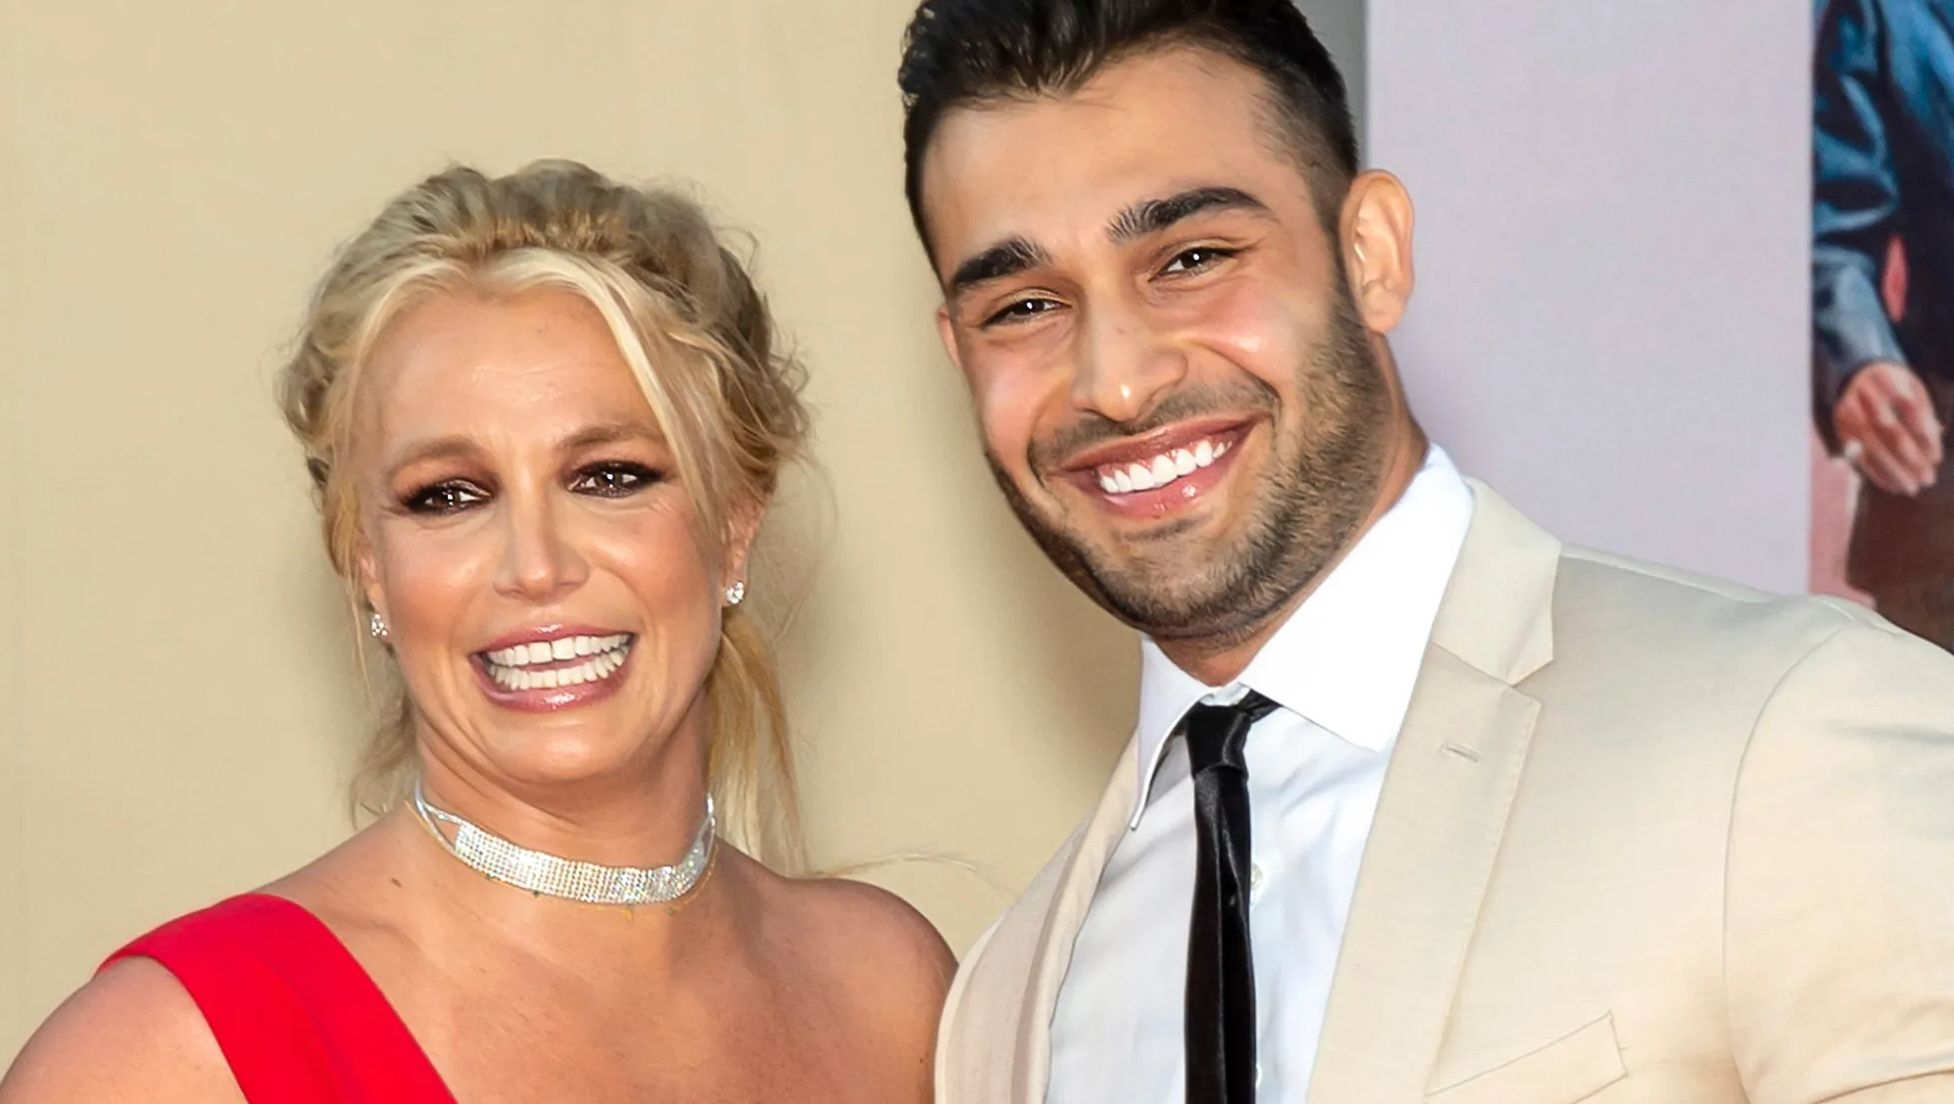 Britney Spears and Sam Asghari at a premiere